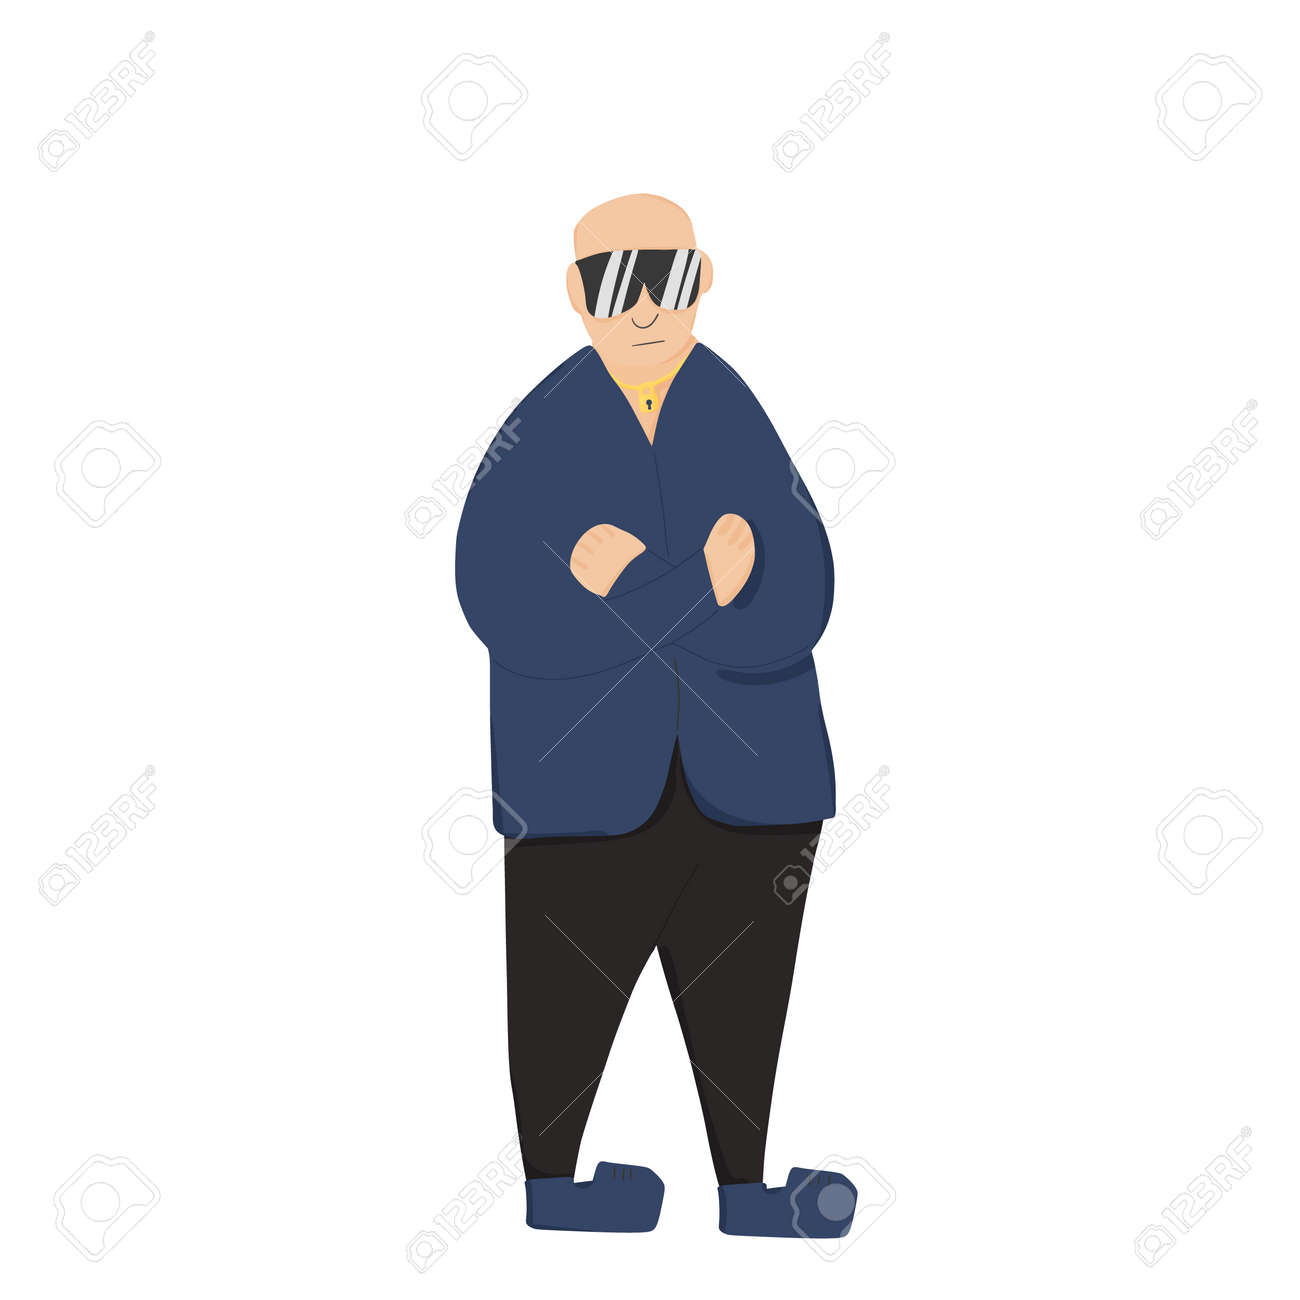 Security guard standing with arms crossed. Man wearing in a guards uniform and sun glasses isolated on white background. Vector illustration. - 168652679